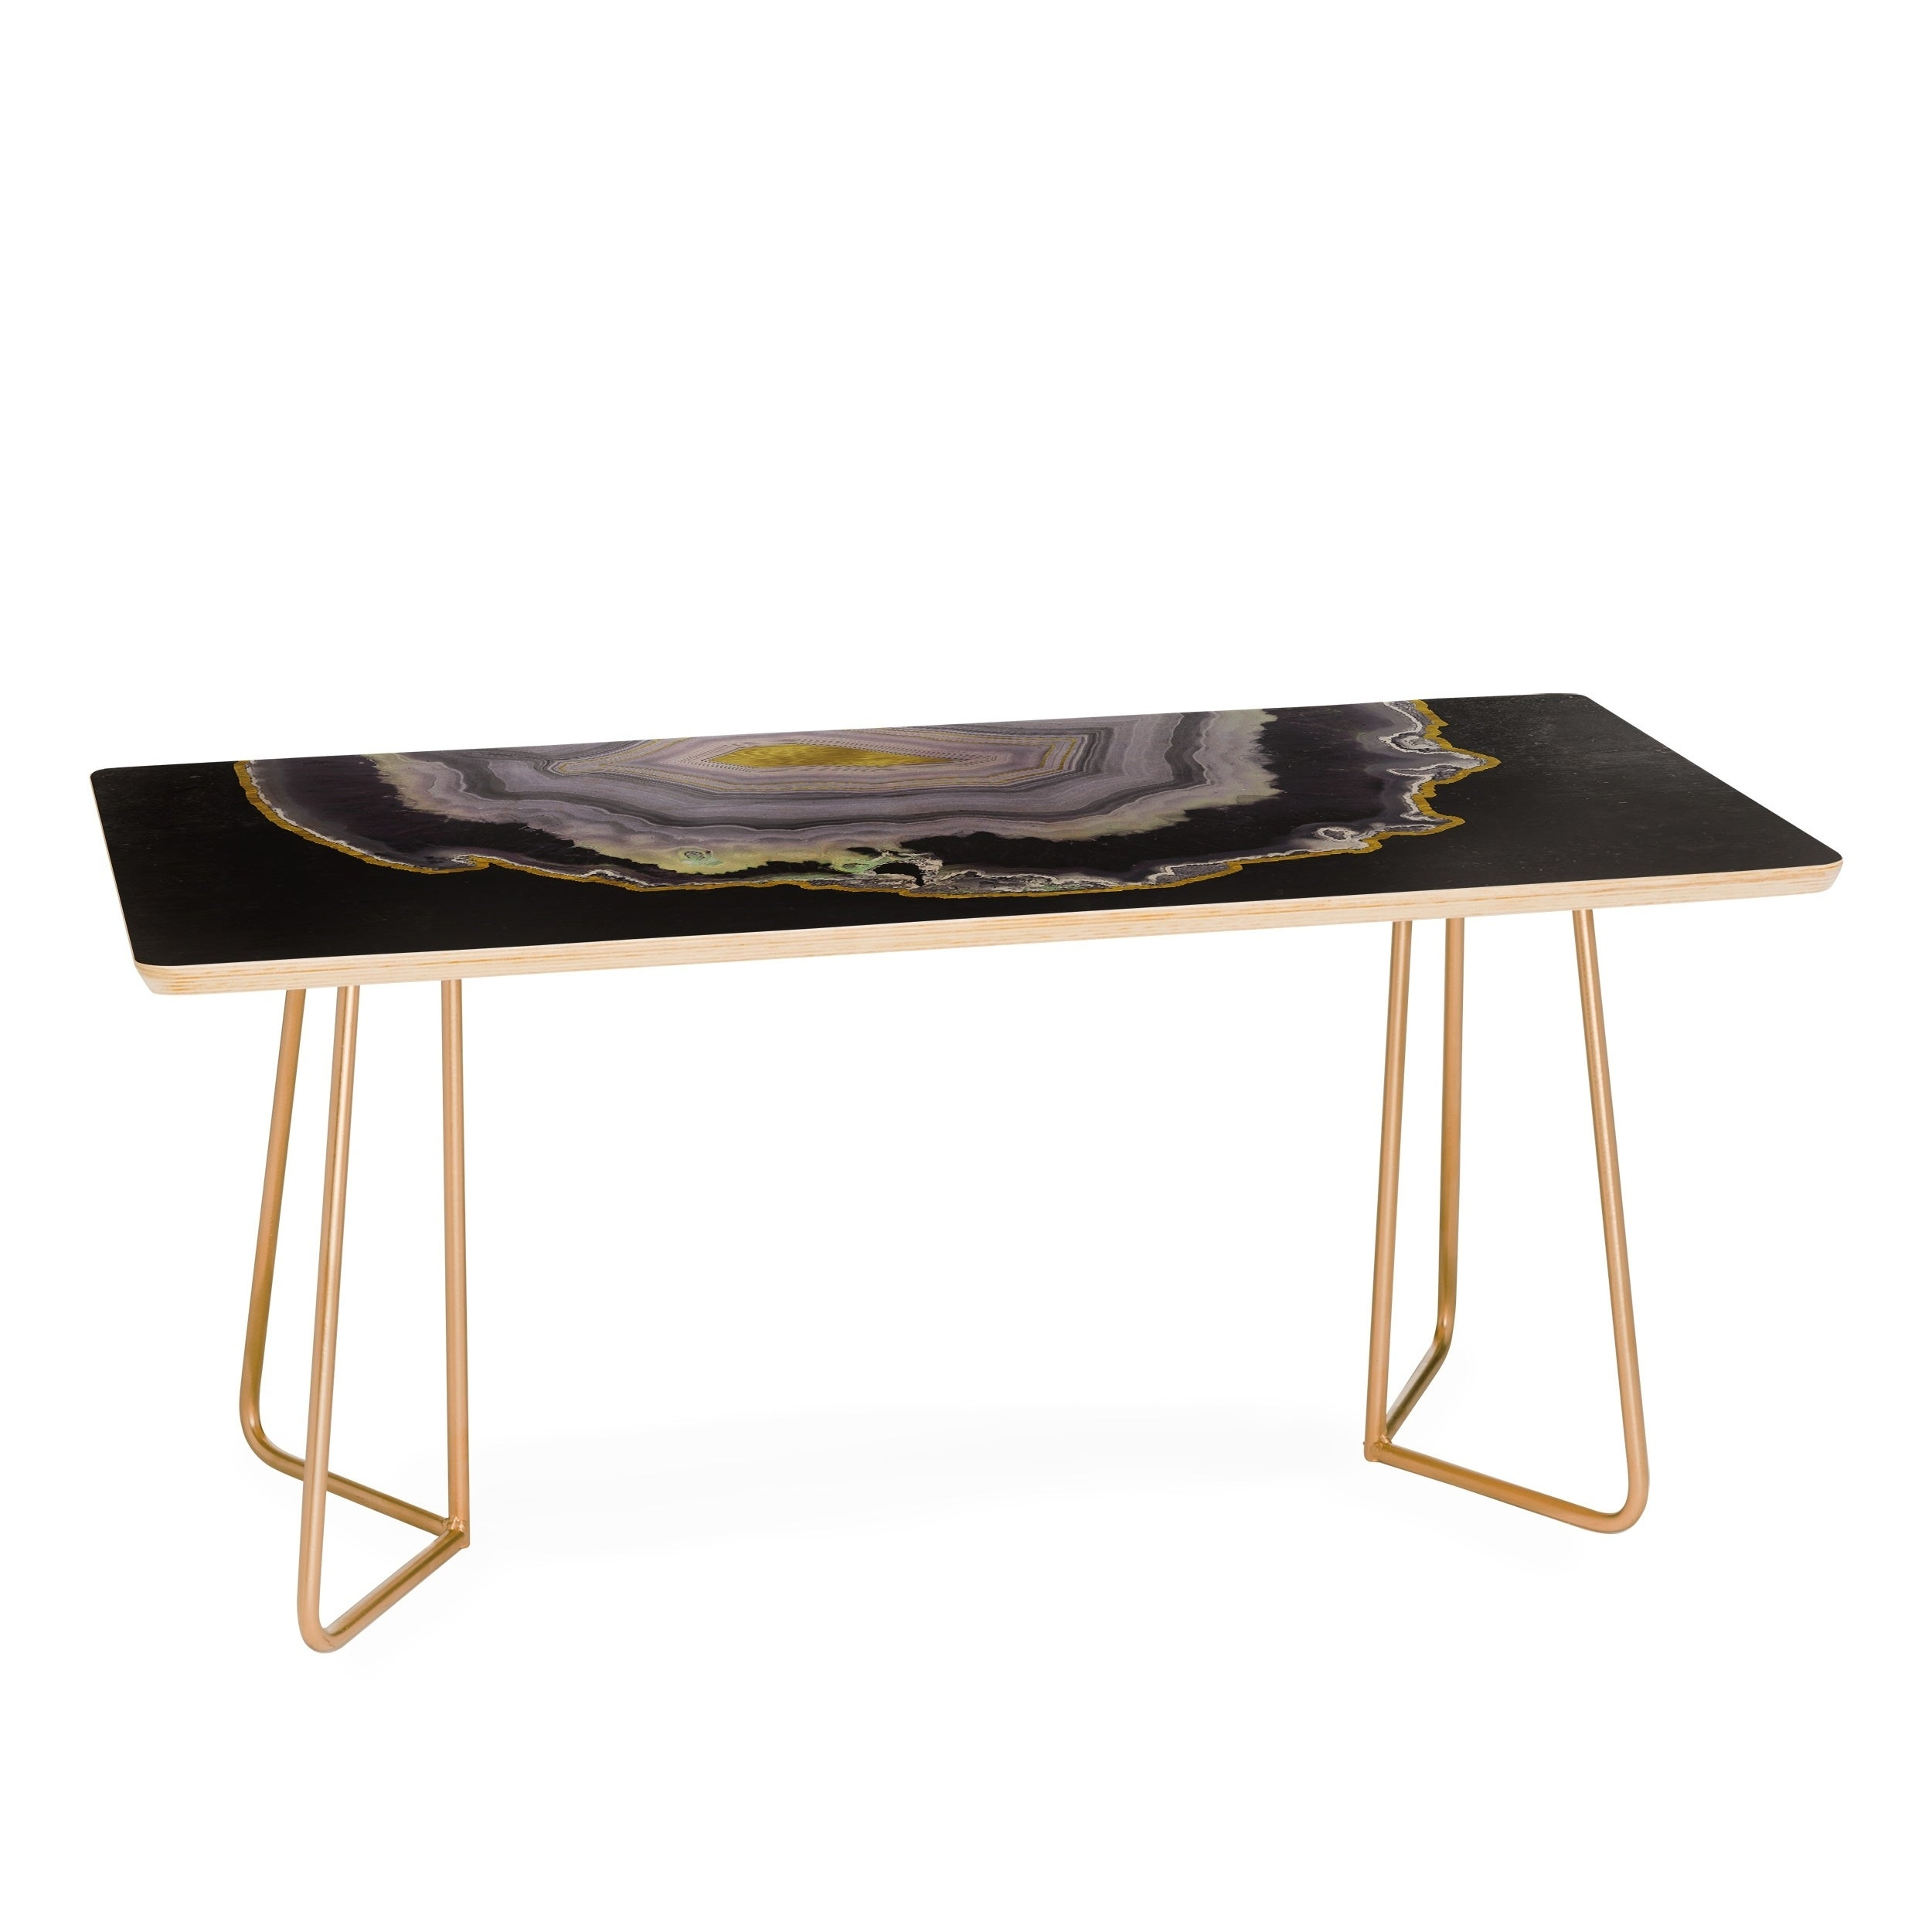 Delicieux Shop Emanuela Carratoni Black And Gold Agate Coffee Table   Free Shipping  Today   Overstock.com   17415101